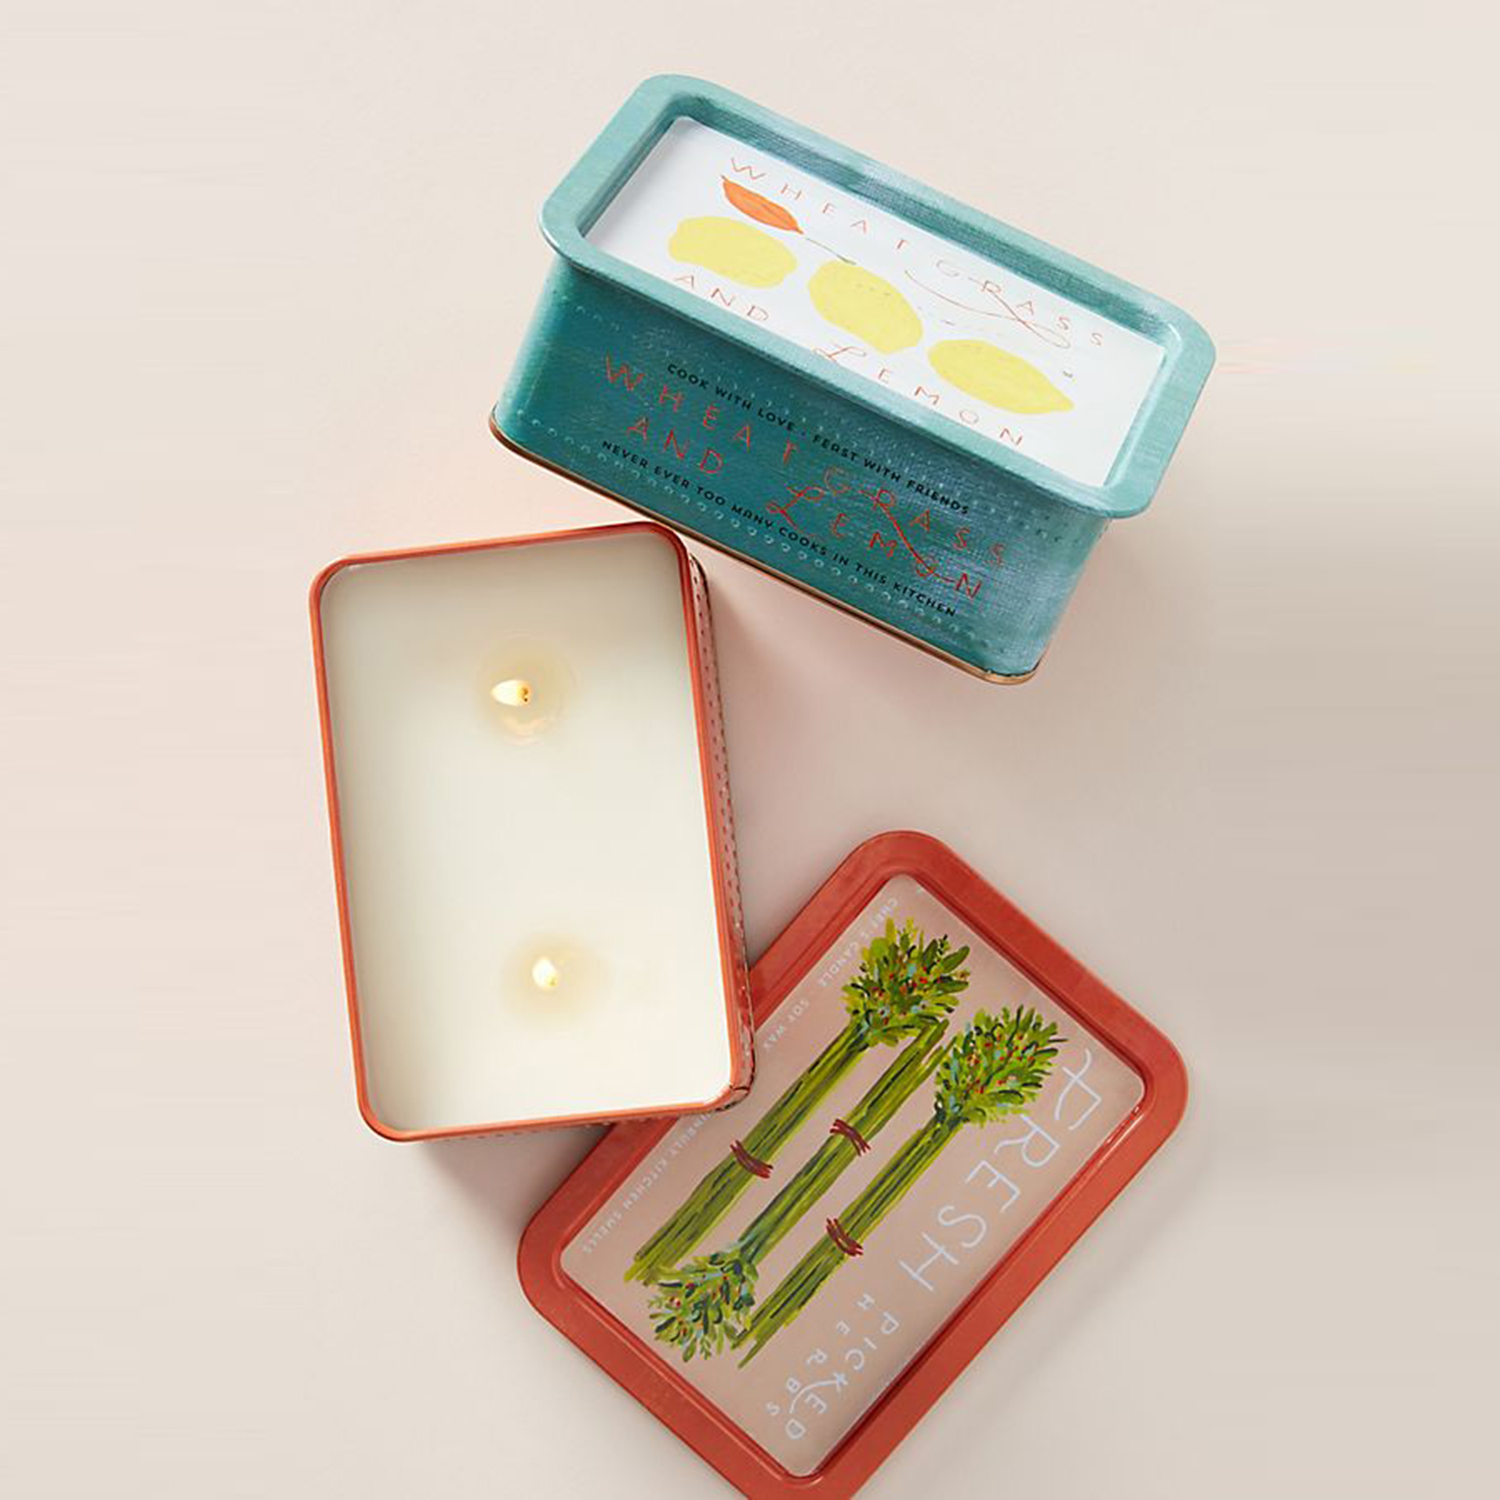 Anthropologie Tin Chef's Candle